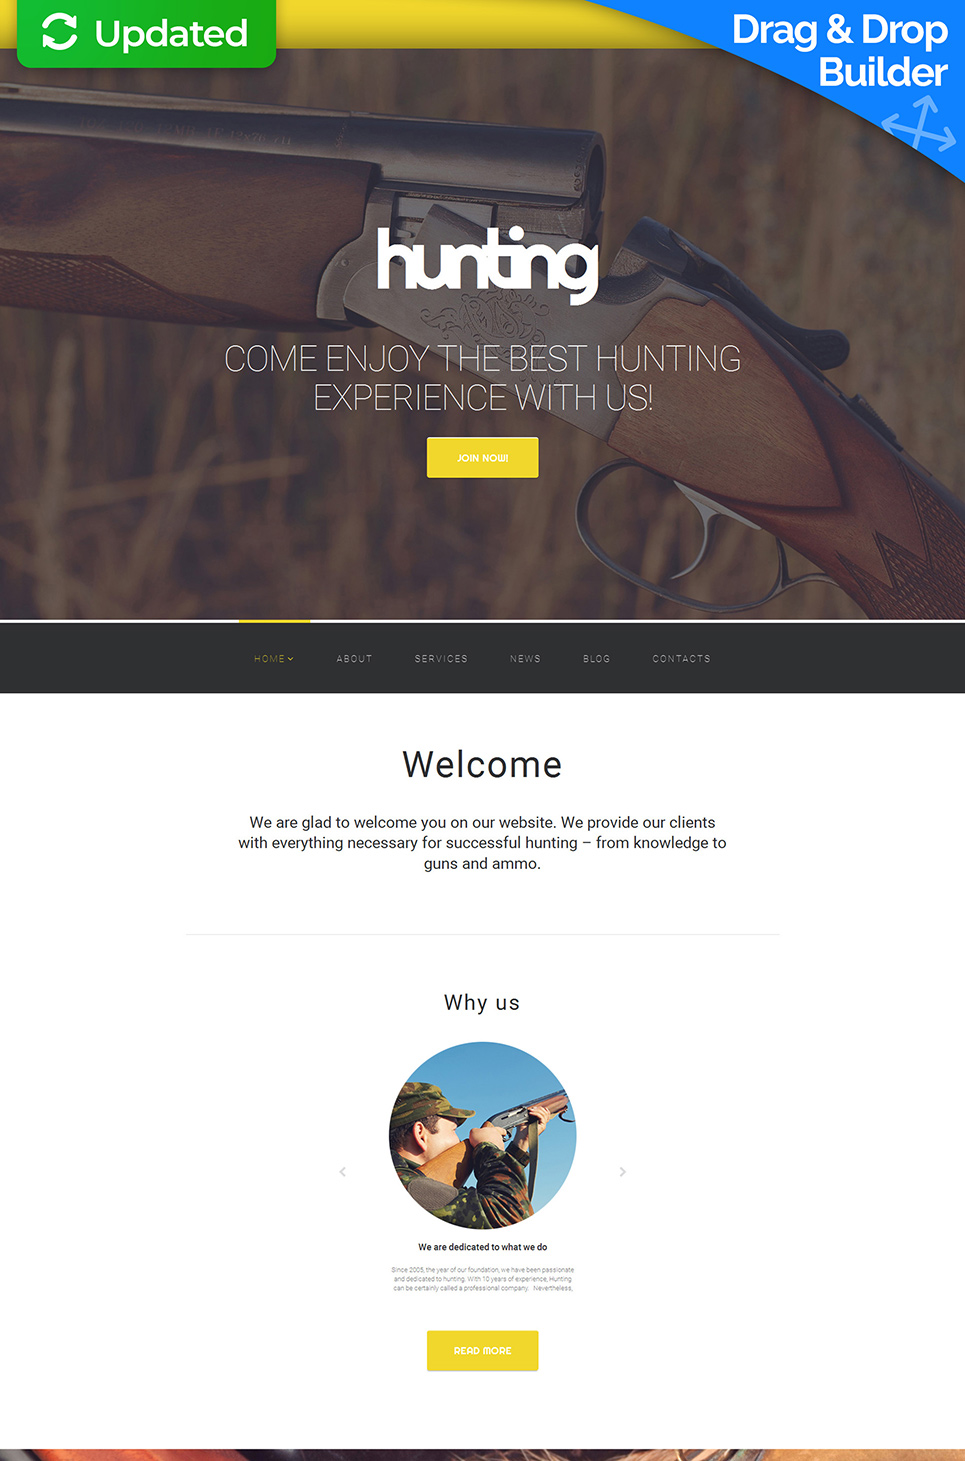 Mobile-friendly site for hunters